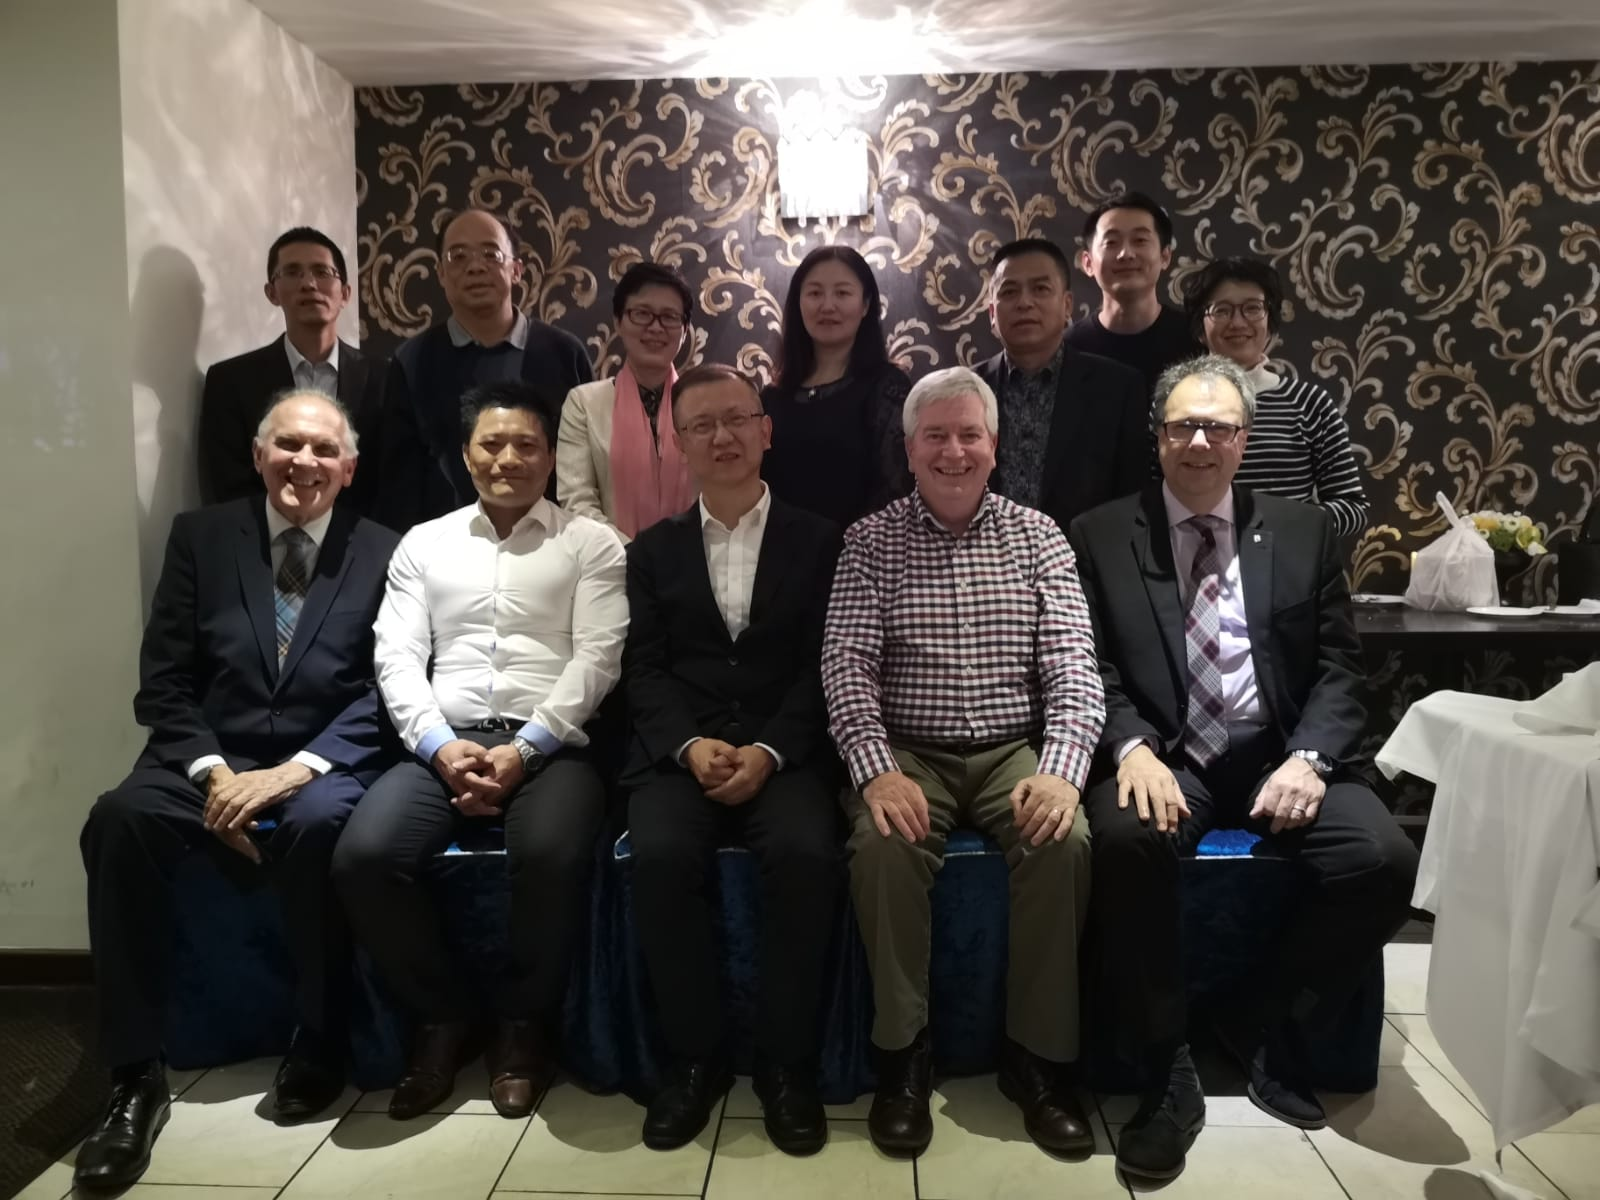 scottish and chinese team councillors meet at The Chinese Manor House in Edinburgh to discuss tourism